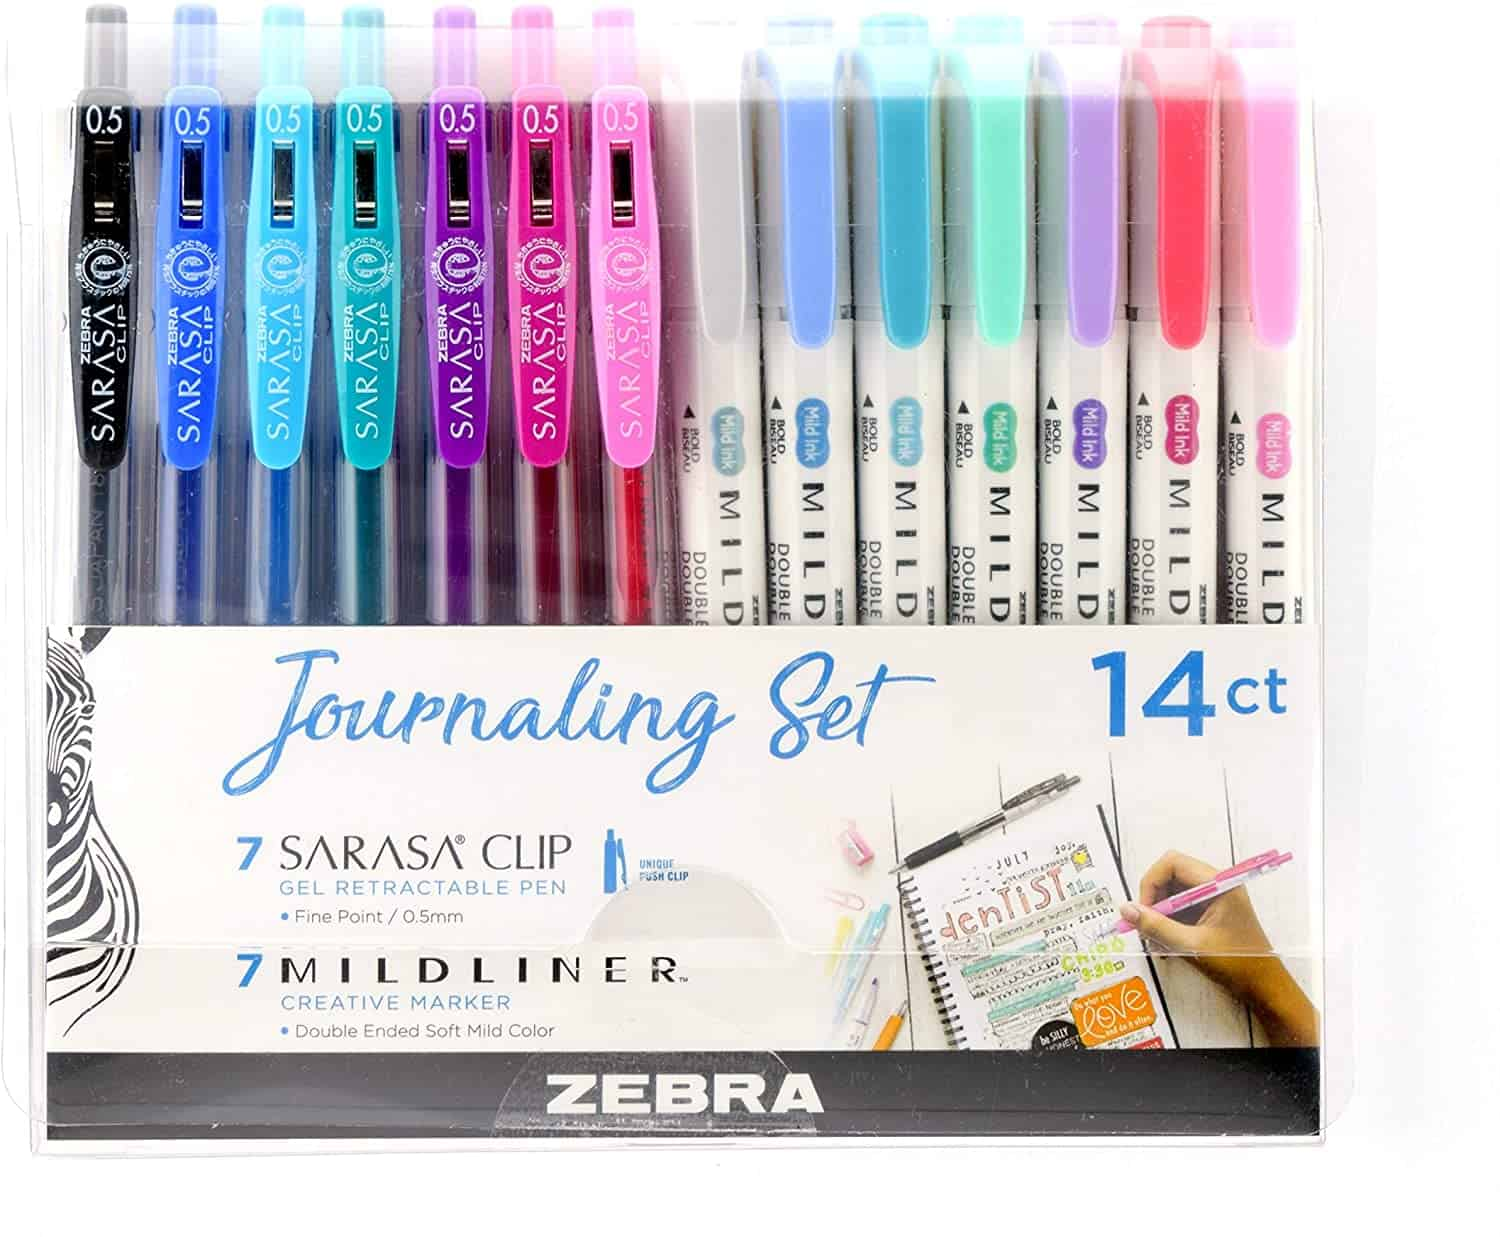 zebra pen journaling set